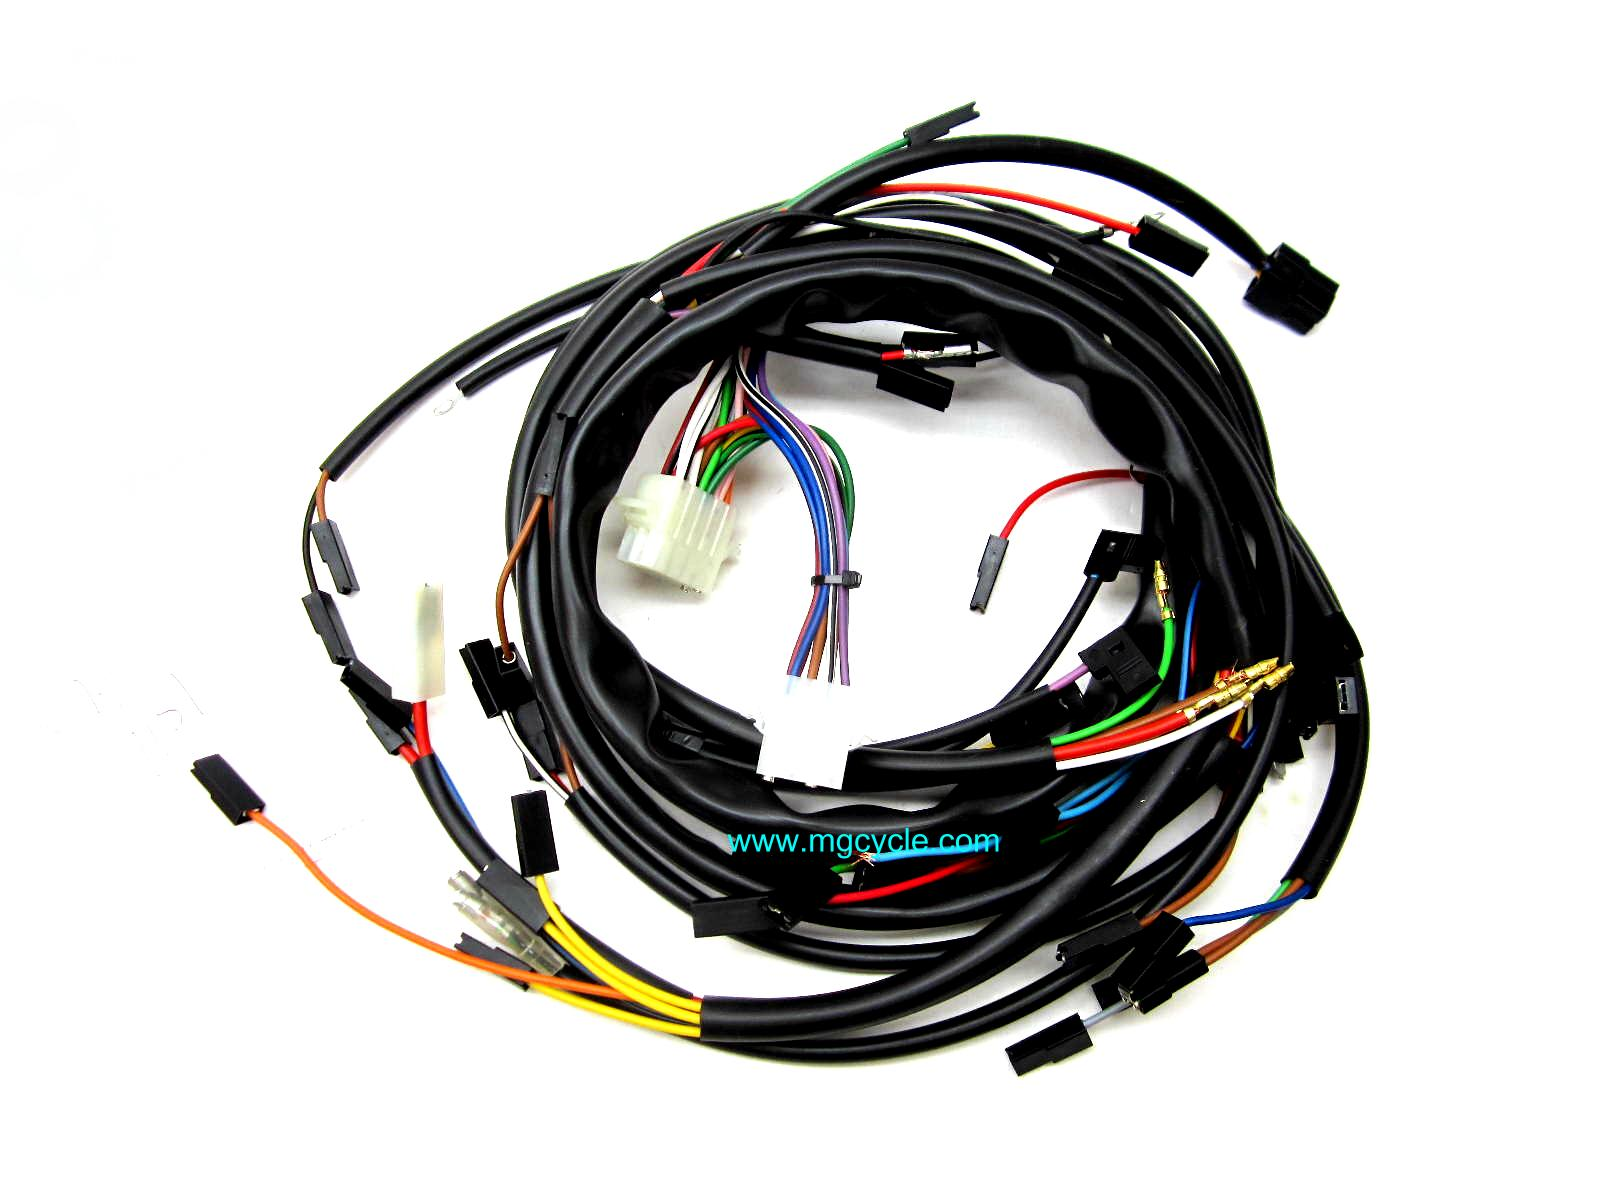 Main wire harness 1977 - 1978 850 LeMans